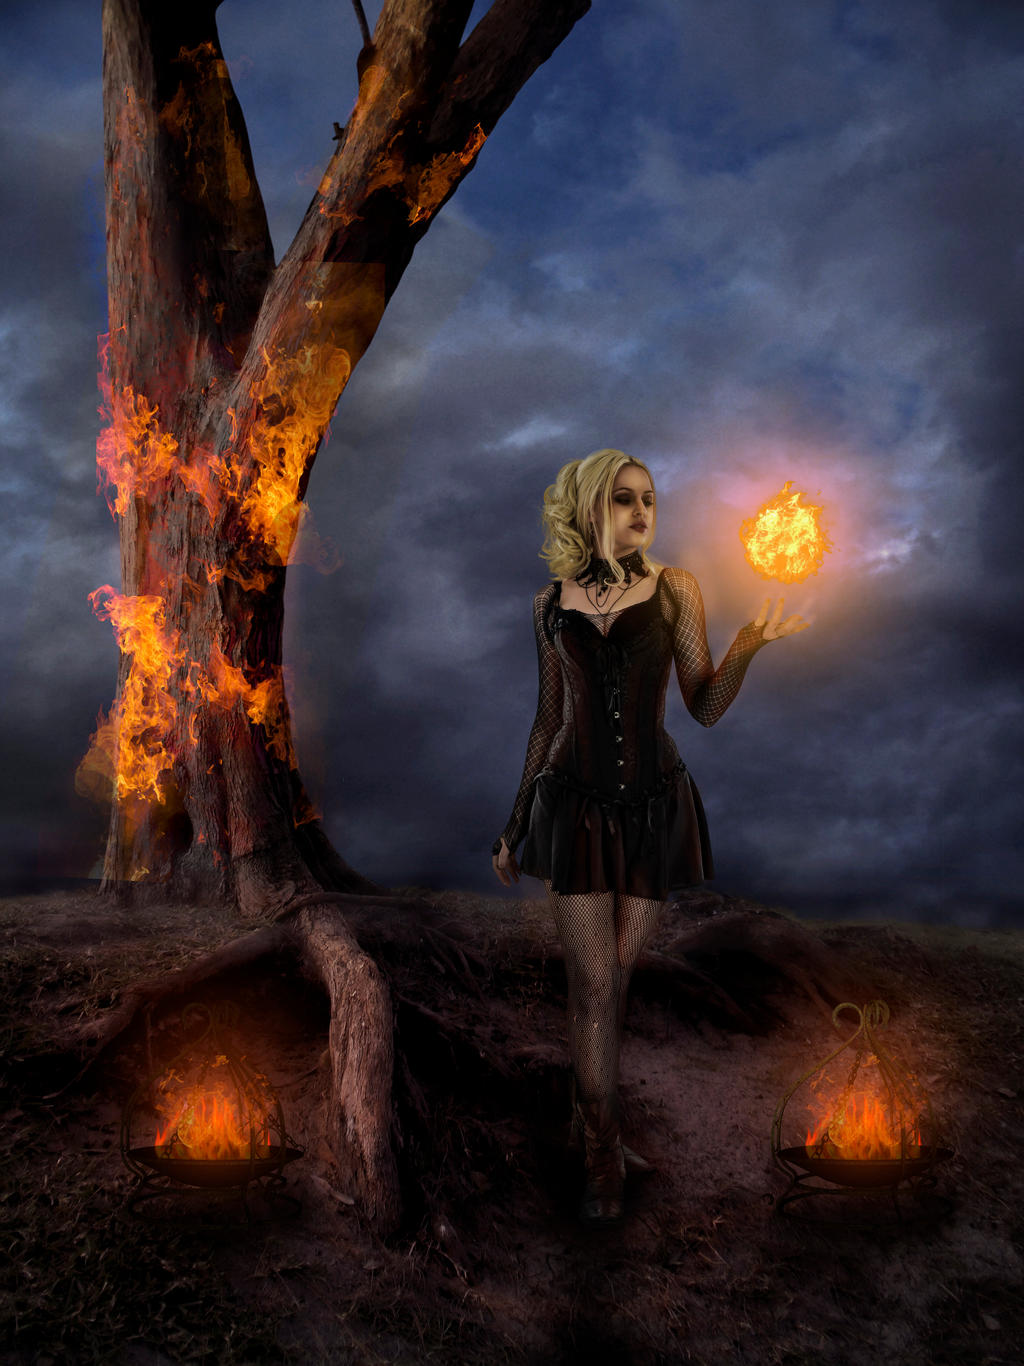 Woman With Fire part 2